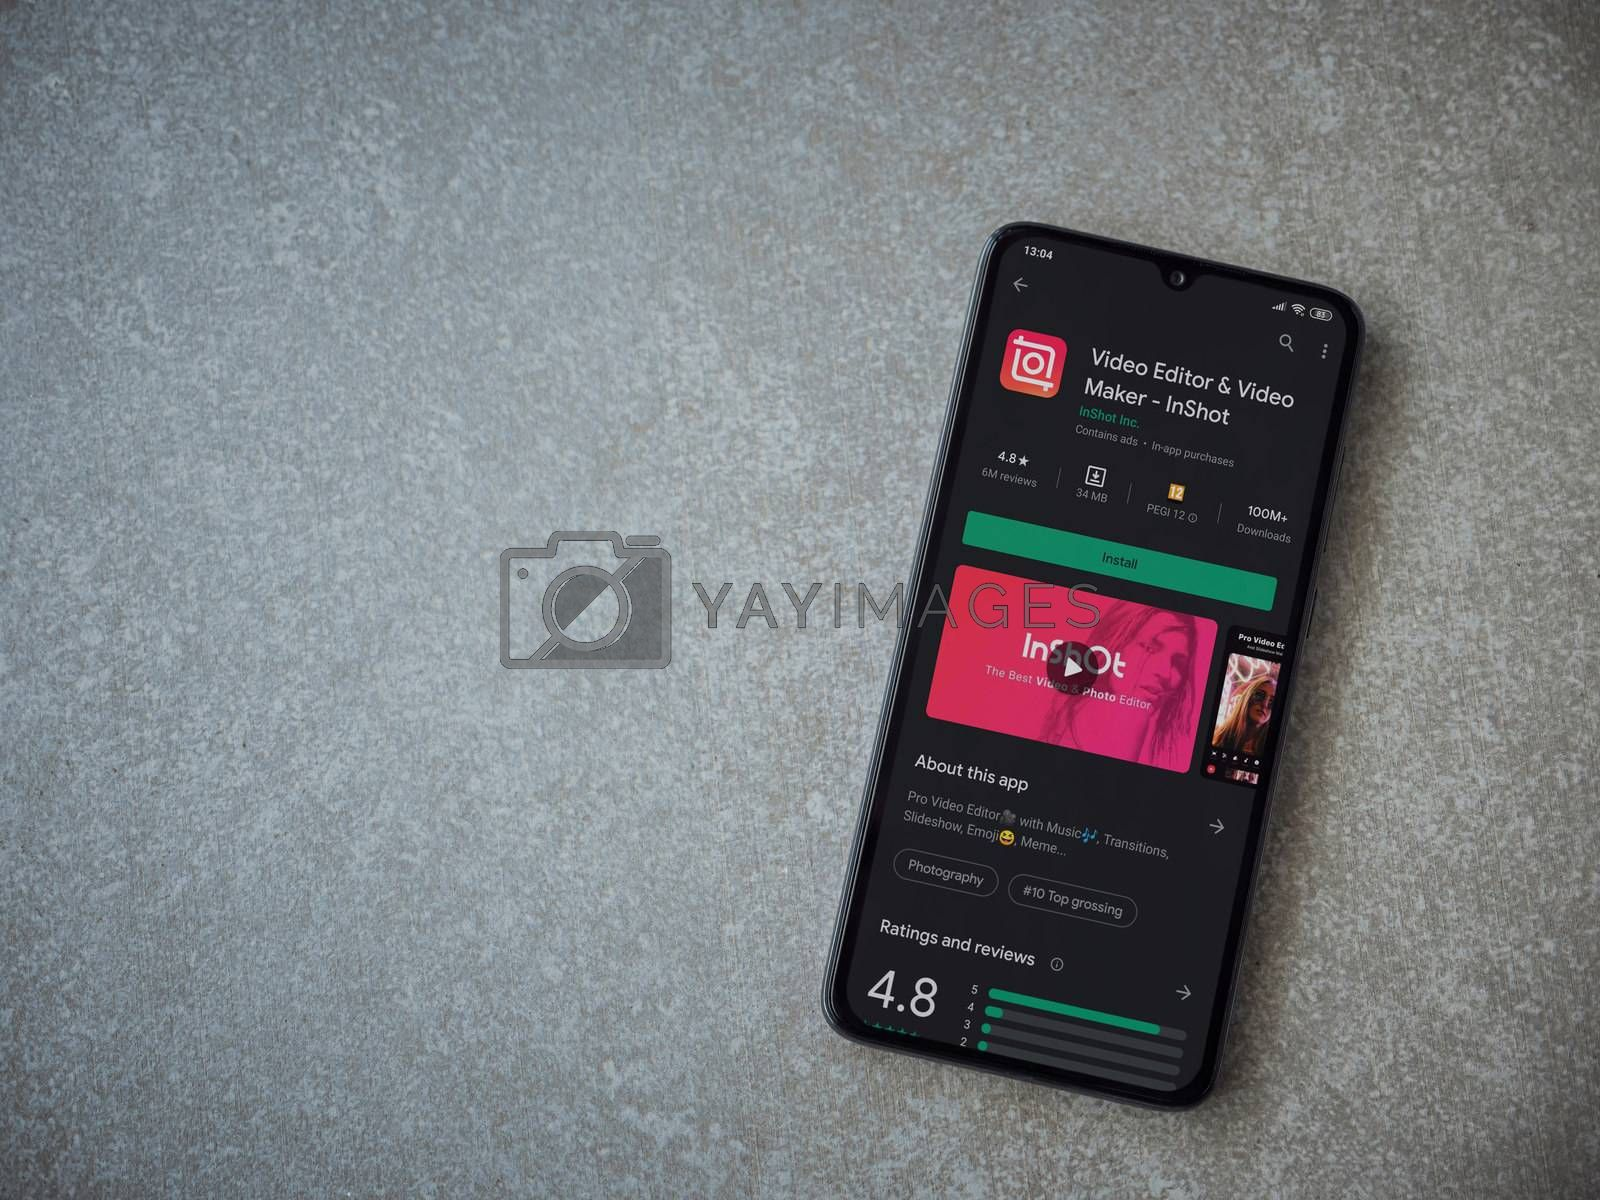 Lod, Israel - July 8, 2020: InShot - Video Editor and Movie Maker app play store page on the display of a black mobile smartphone on ceramic stone background. Top view flat lay with copy space.